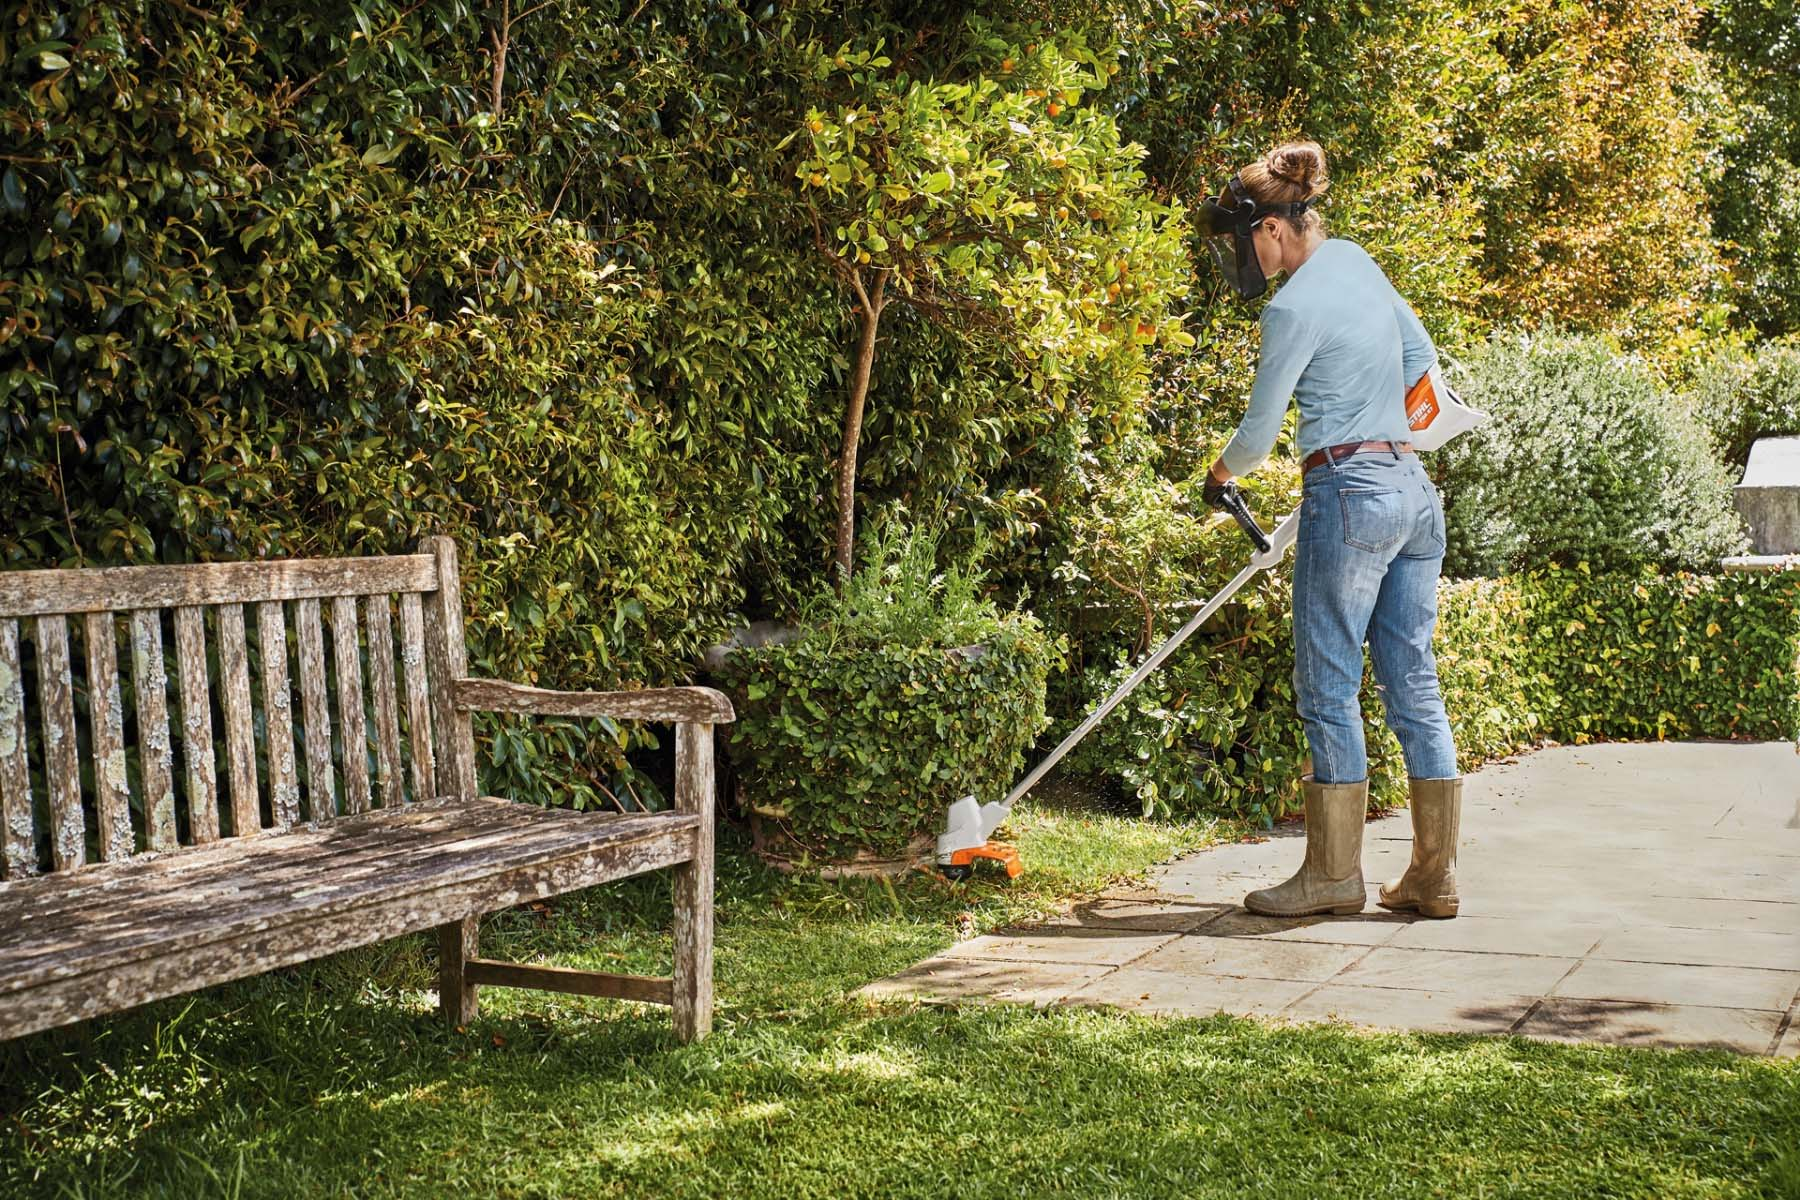 STIHL FSA 57 Line Trimmer for medium gardens at STIHL SHOP